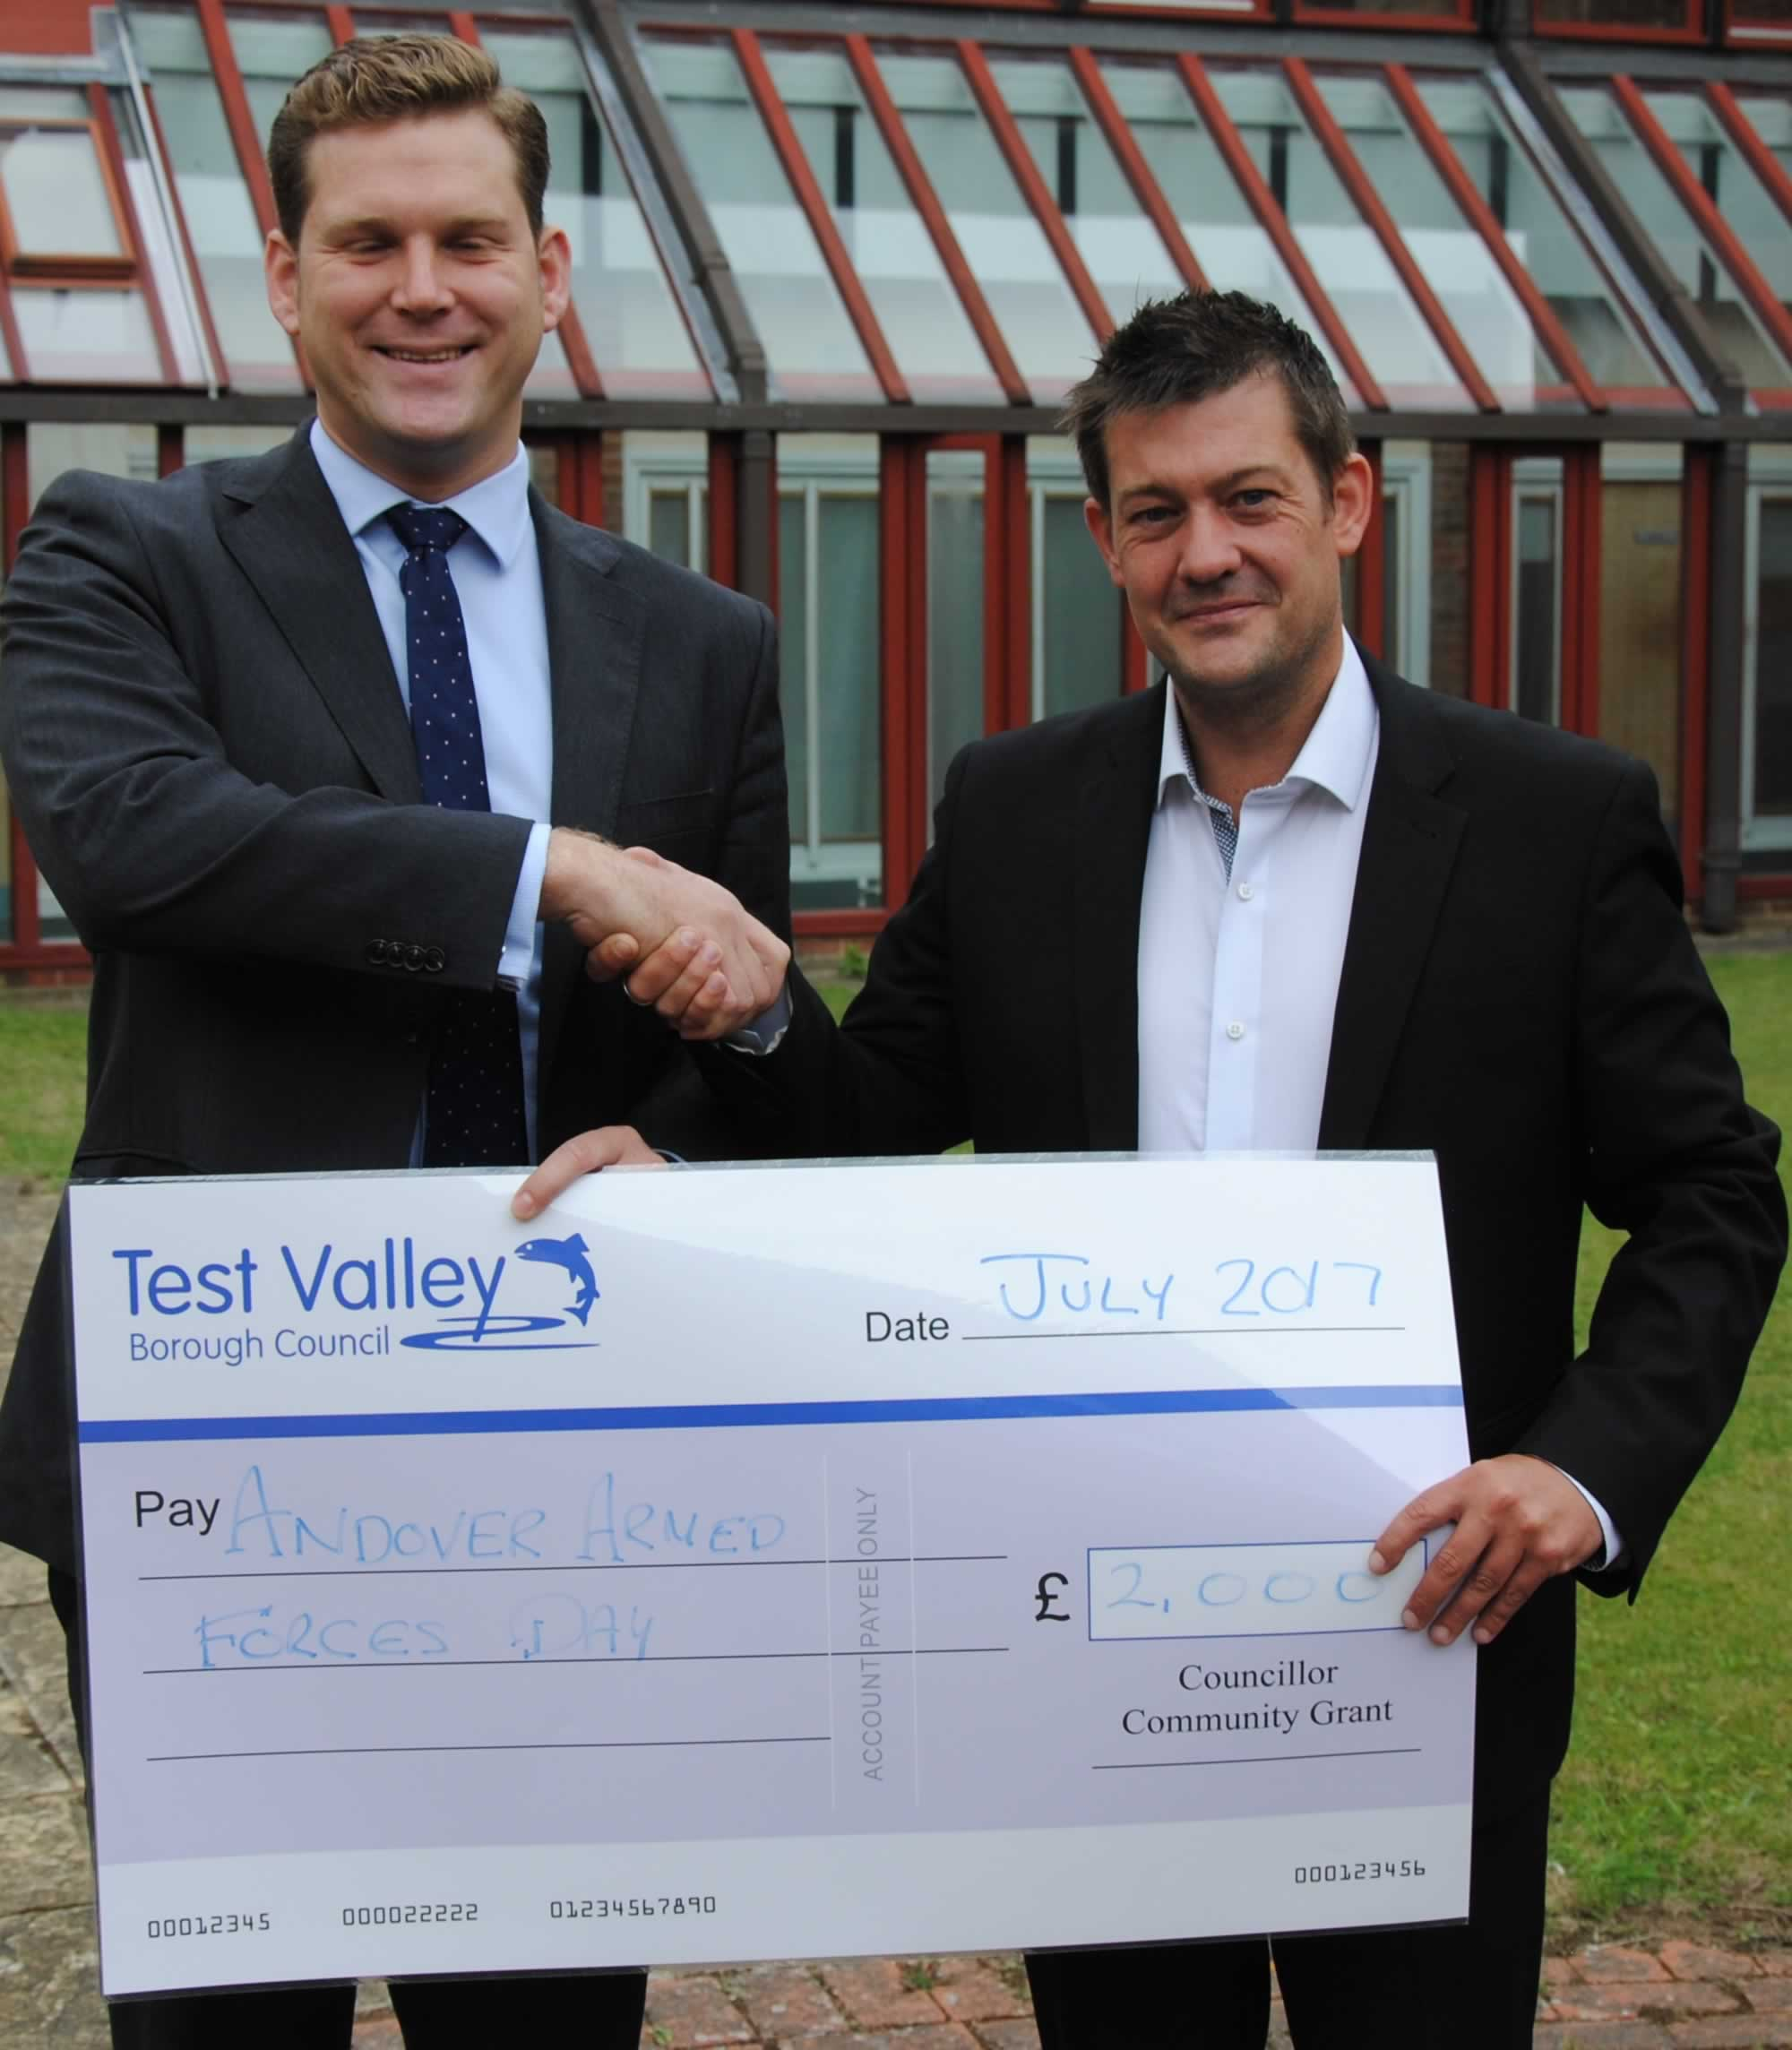 Andover Armed Forces Day Cheque TVBC